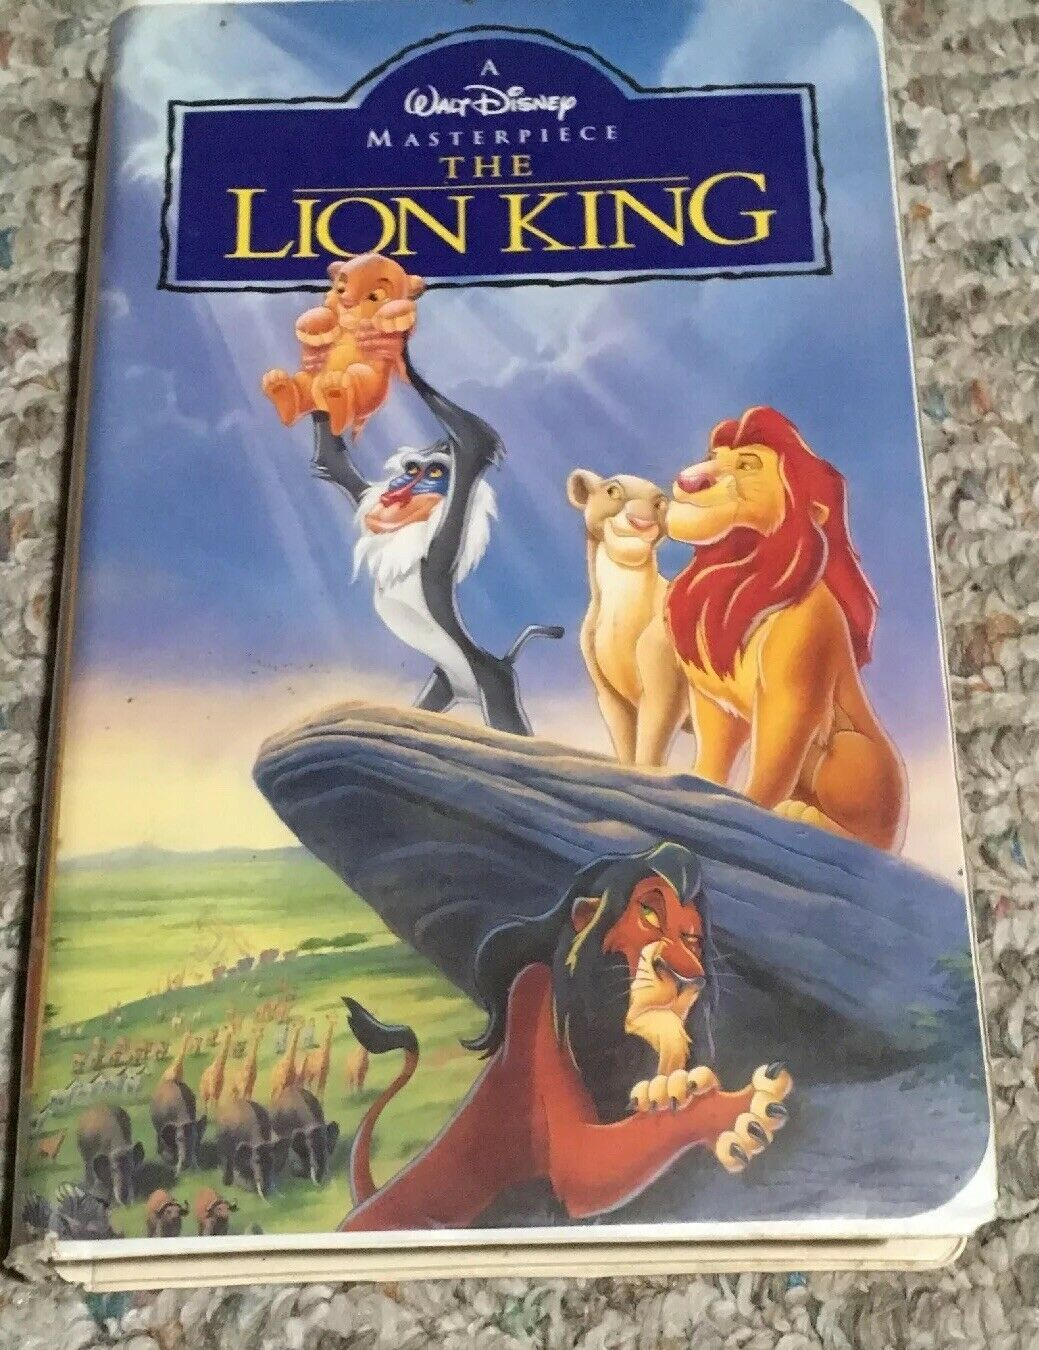 Primary image for The Lion King (VHS, 1995)